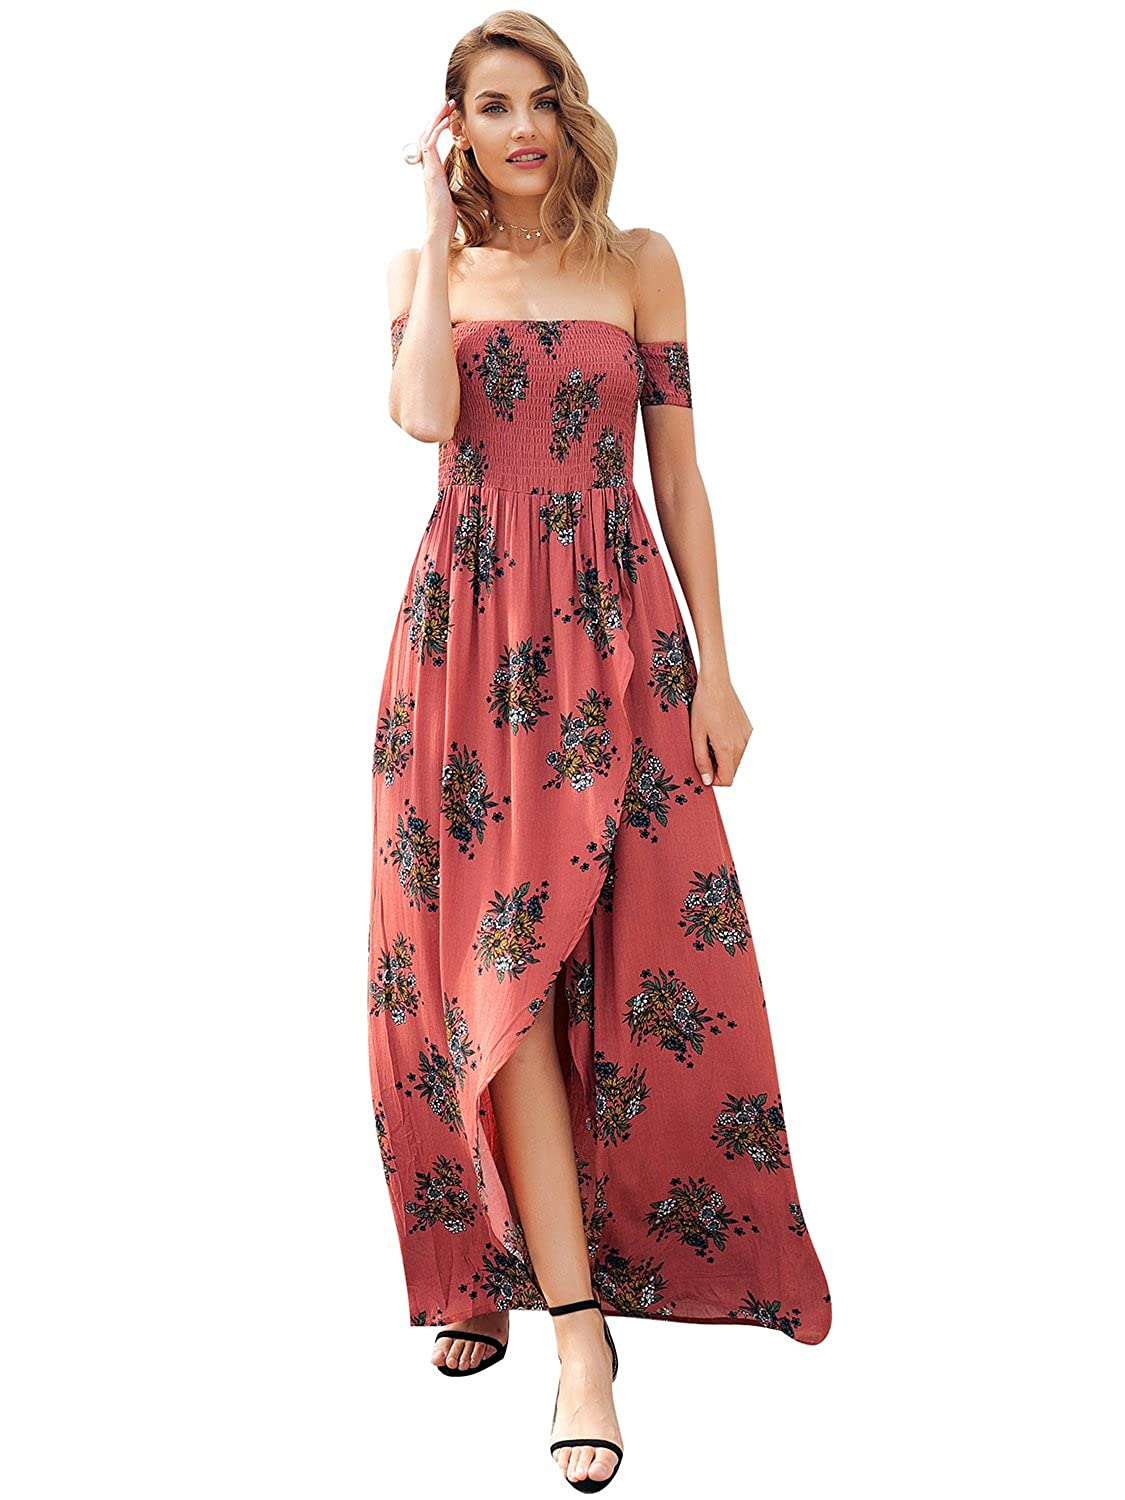 deb73d215ba1 Simplee Women s Boho Floral Off Shoulder Maxi Beach Dress with Long Sleeves Rust  Red at Amazon Women s Clothing store